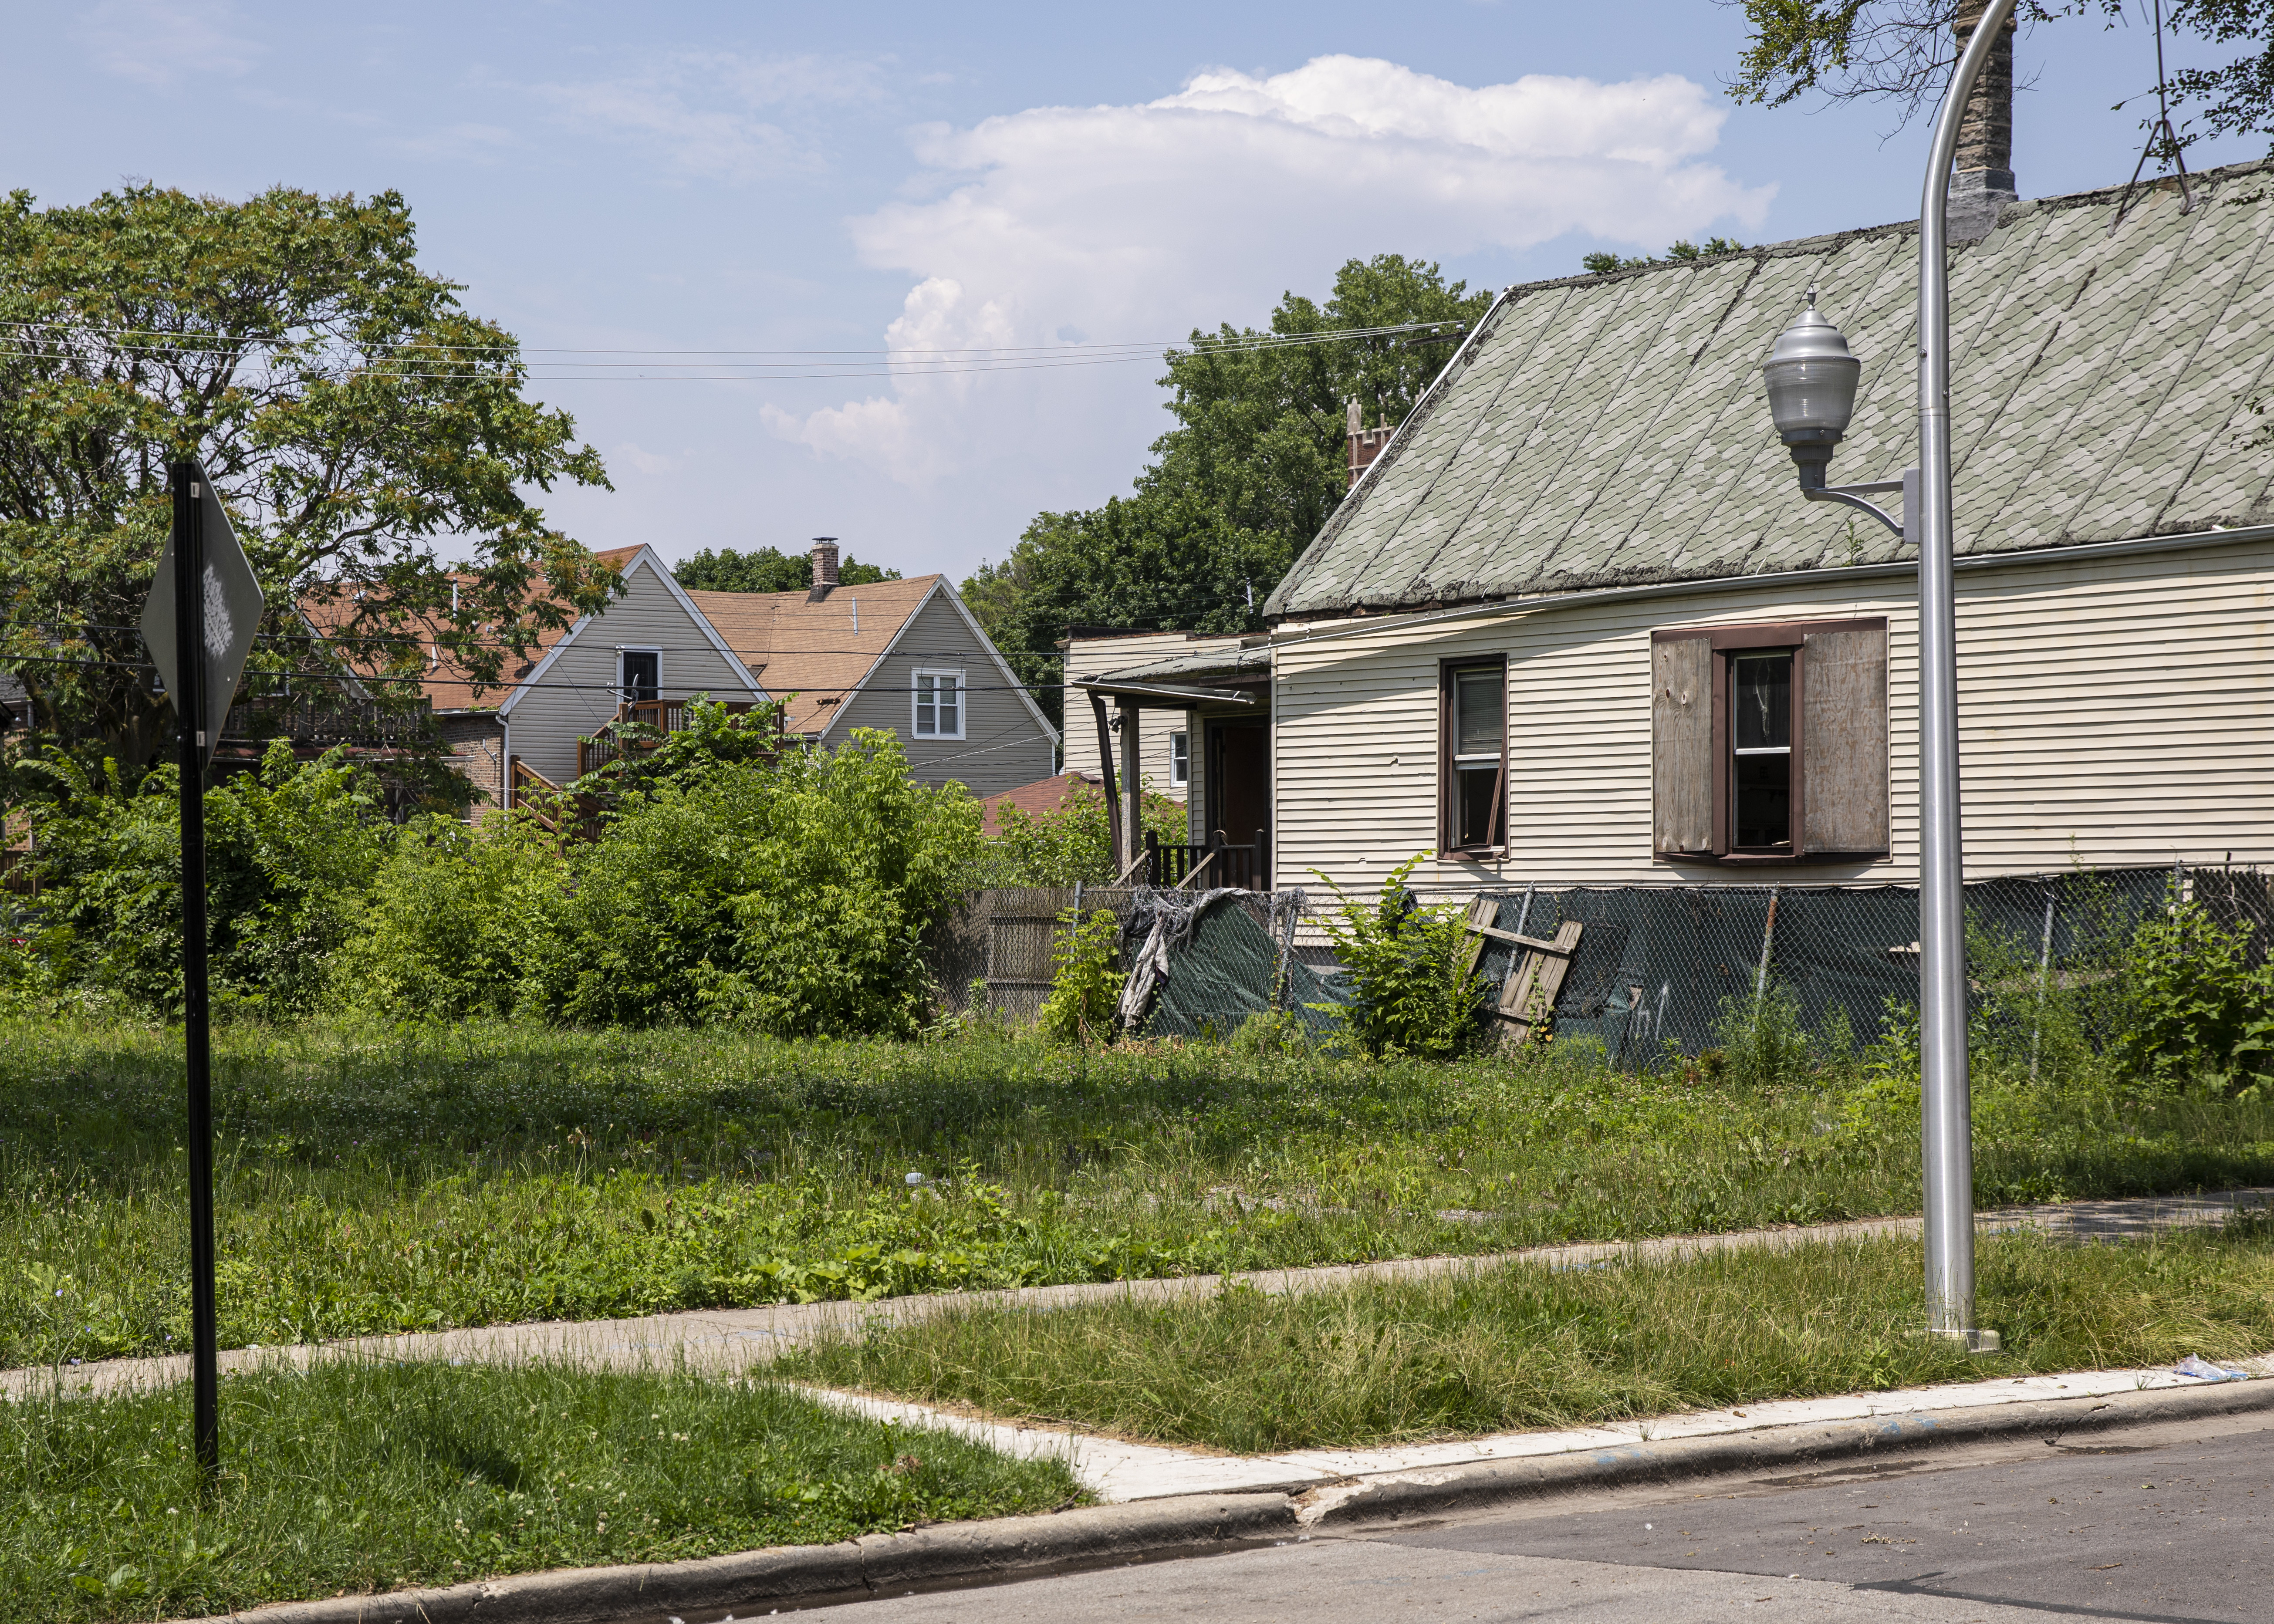 Vacant lots sit in the 6400 block of South Honore Street in Chicago's Englewood neighborhood on the South Side, Wednesday, July 3, 2019.